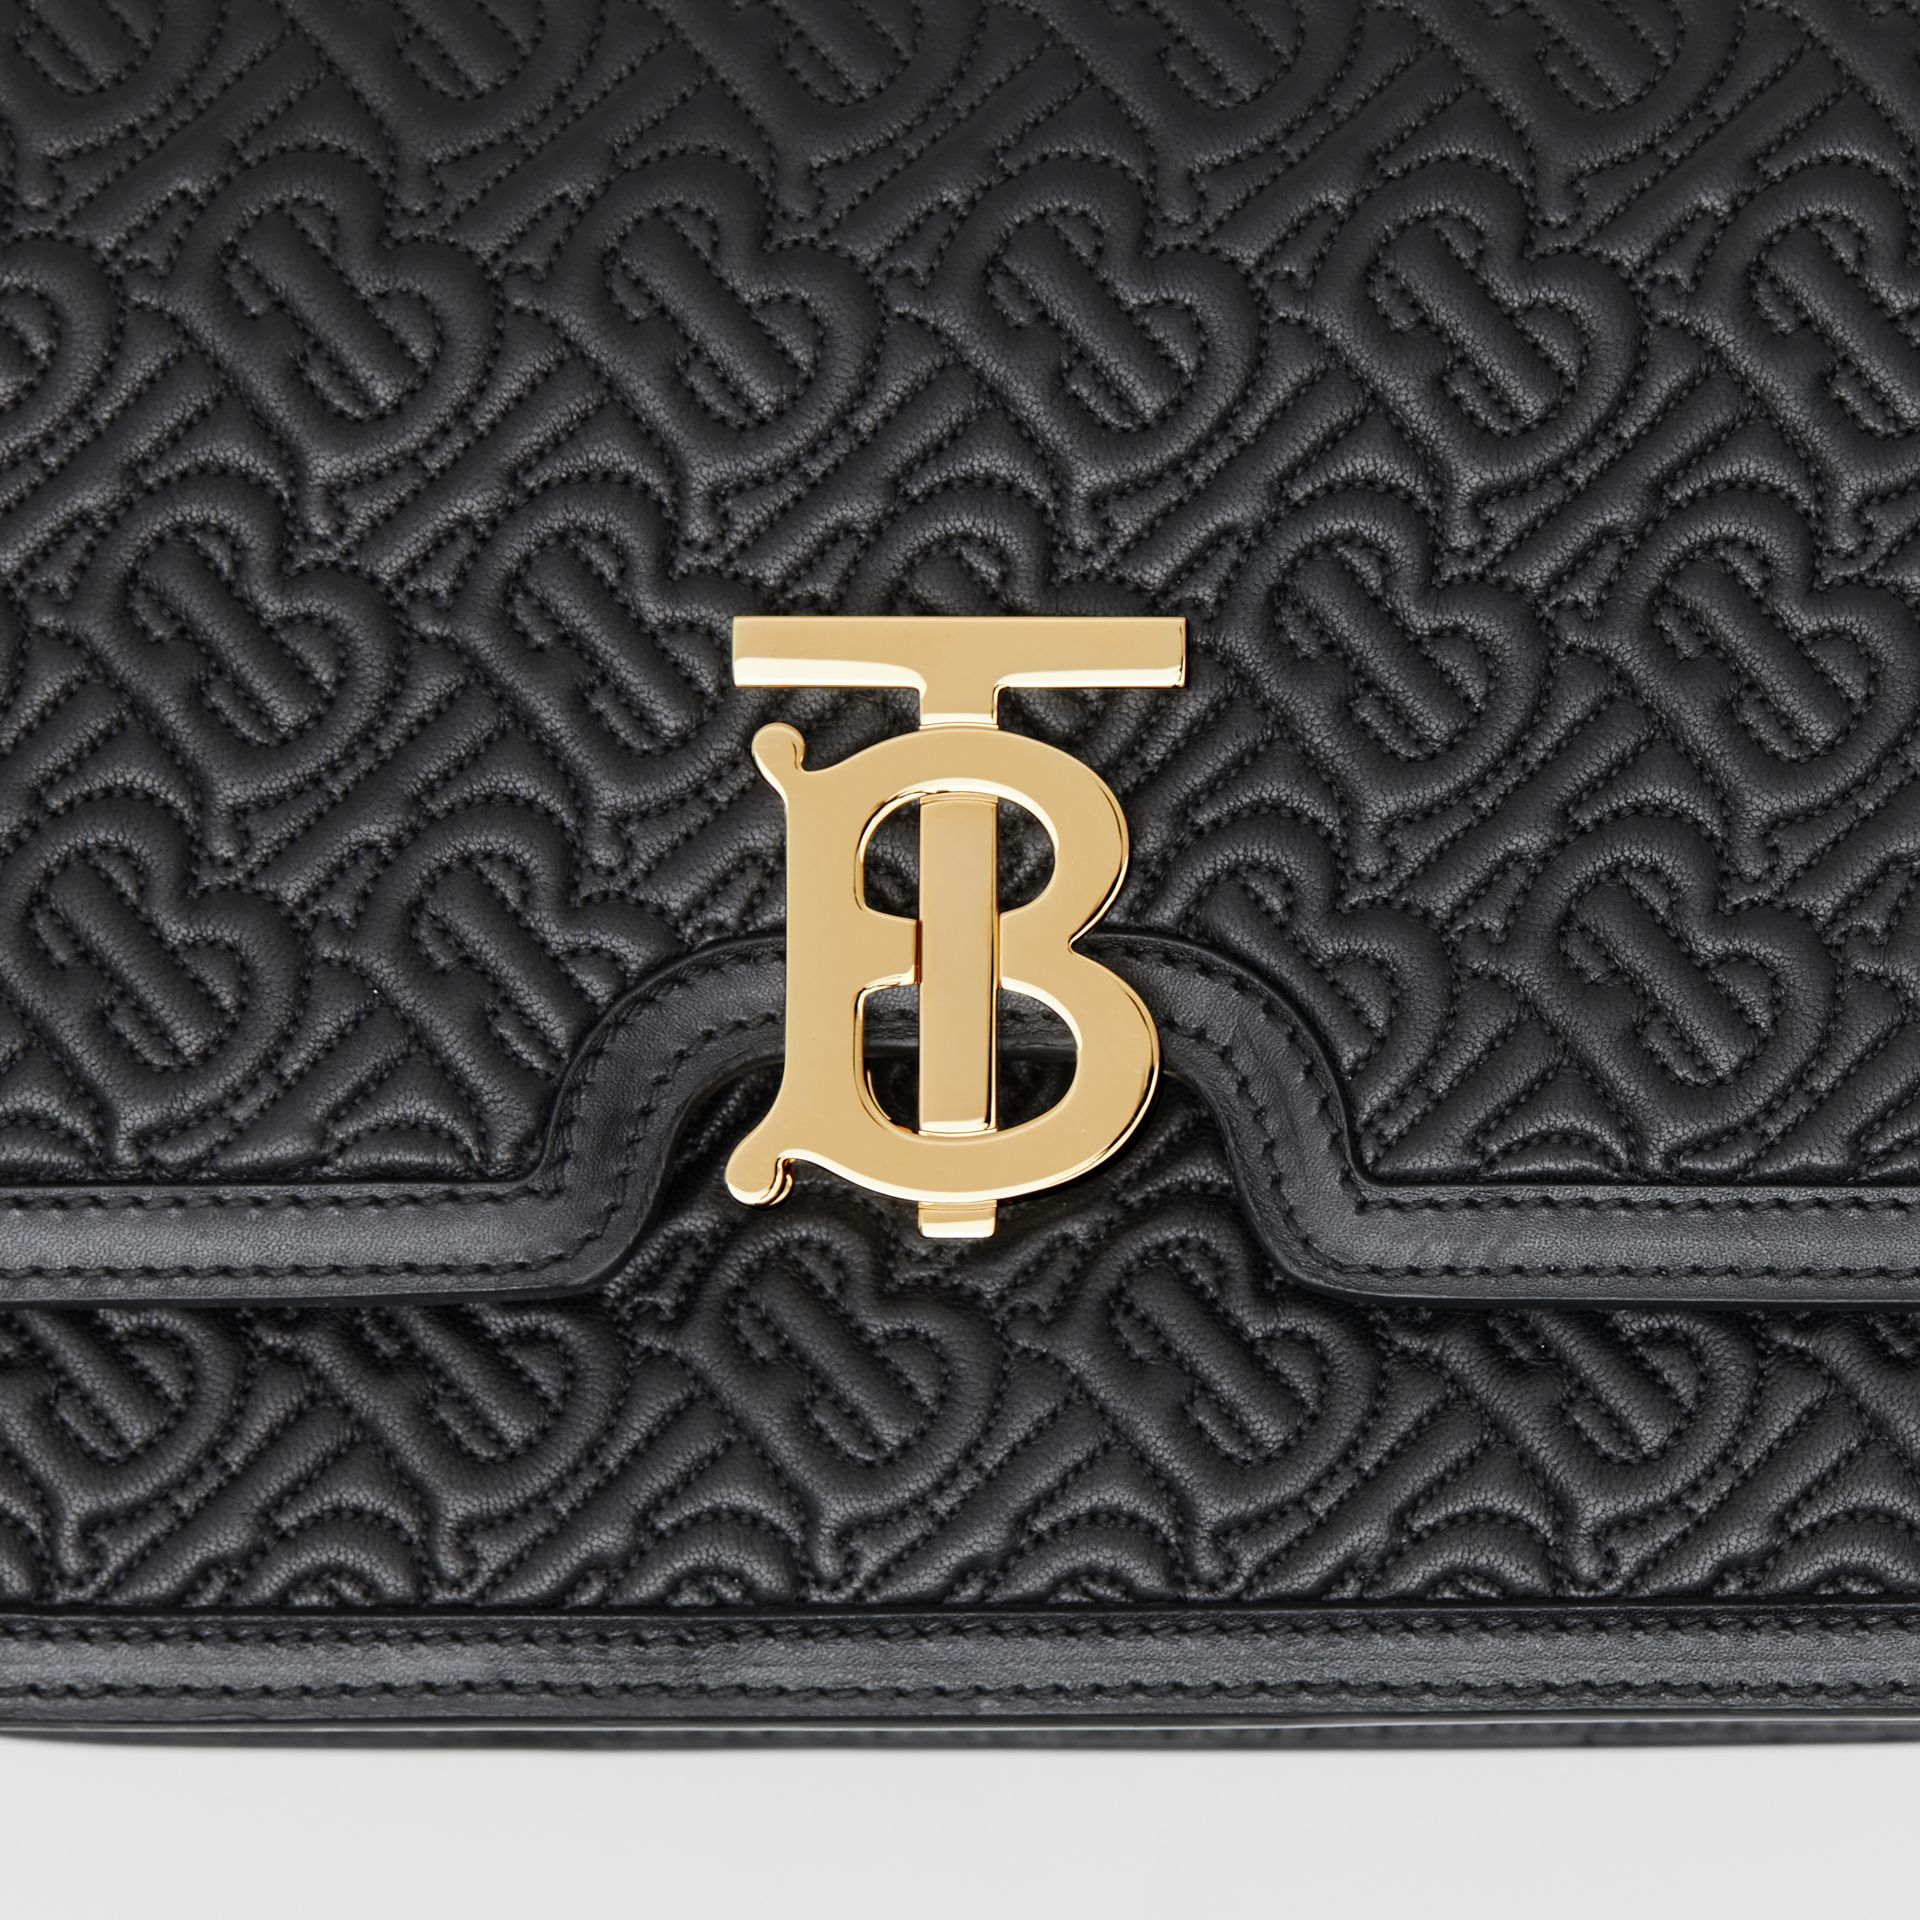 Medium Quilted Monogram Lambskin TB Bag in Black - Women | Burberry Canada - gallery image 8